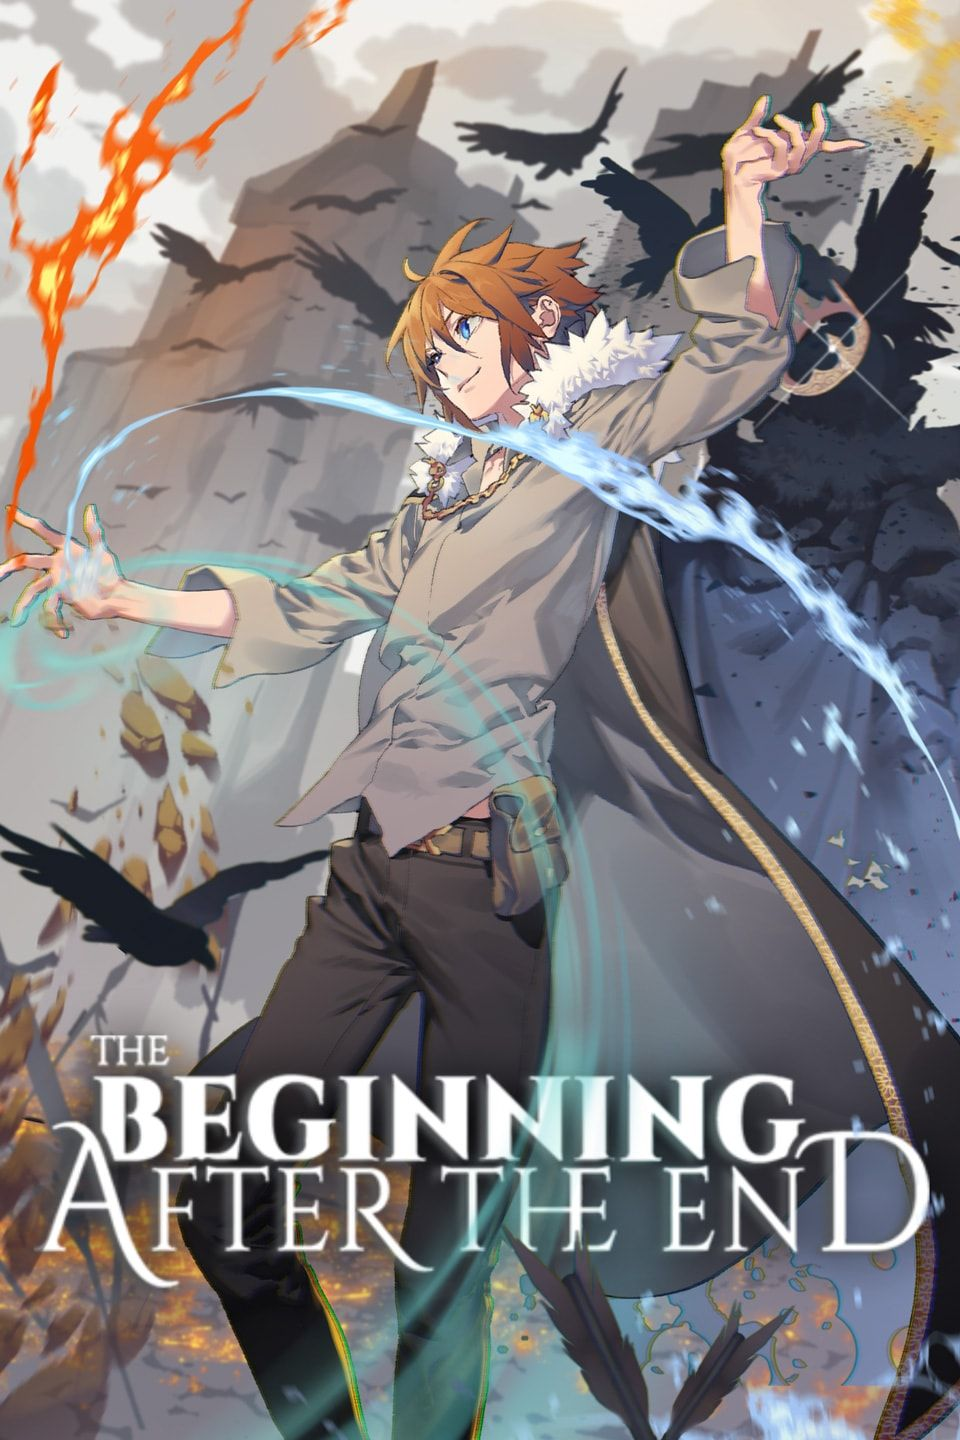 The Beginning After The End Chapter 120 Release Date, Recap, Spoilers